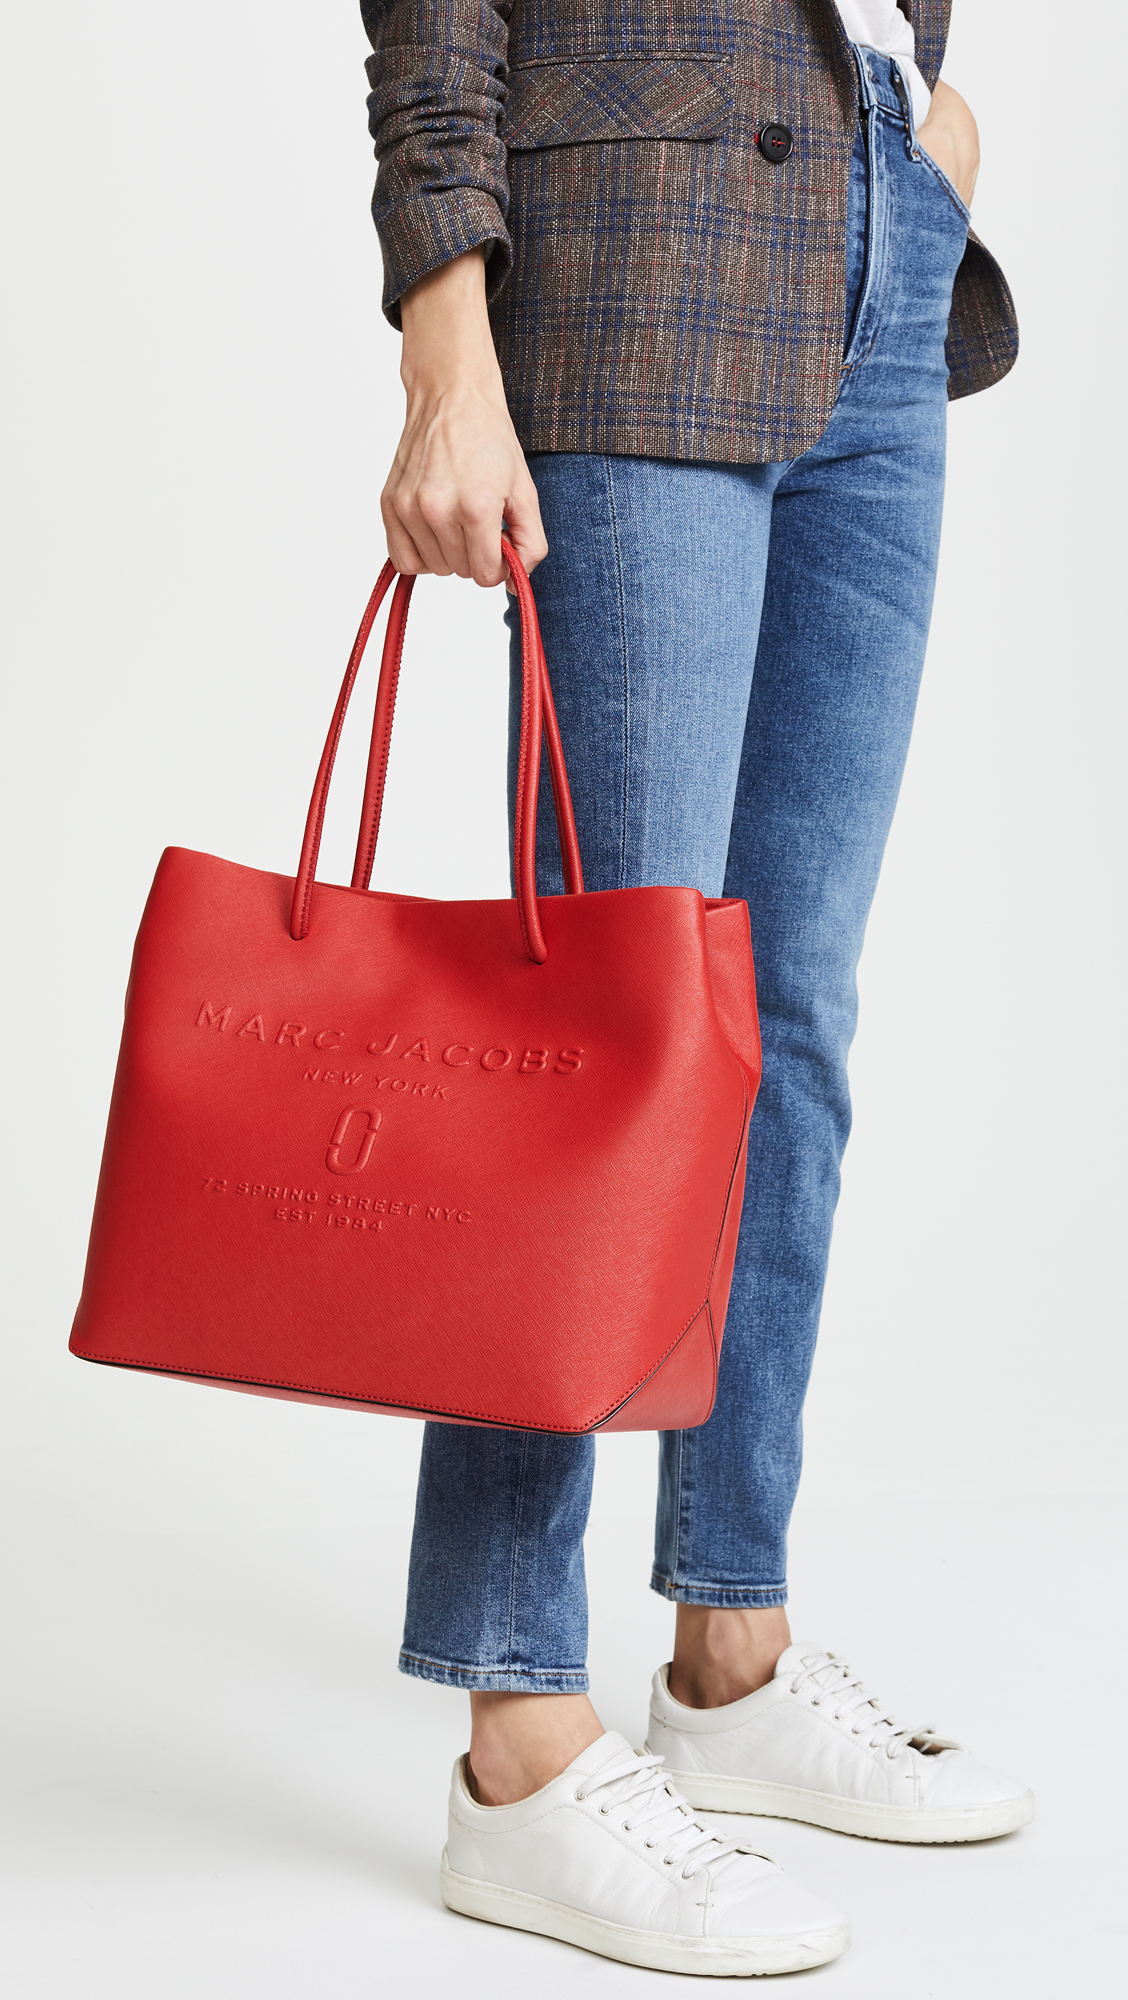 8b599b12e Marc Jacobs Logo Shopper Tote | SHOPBOP